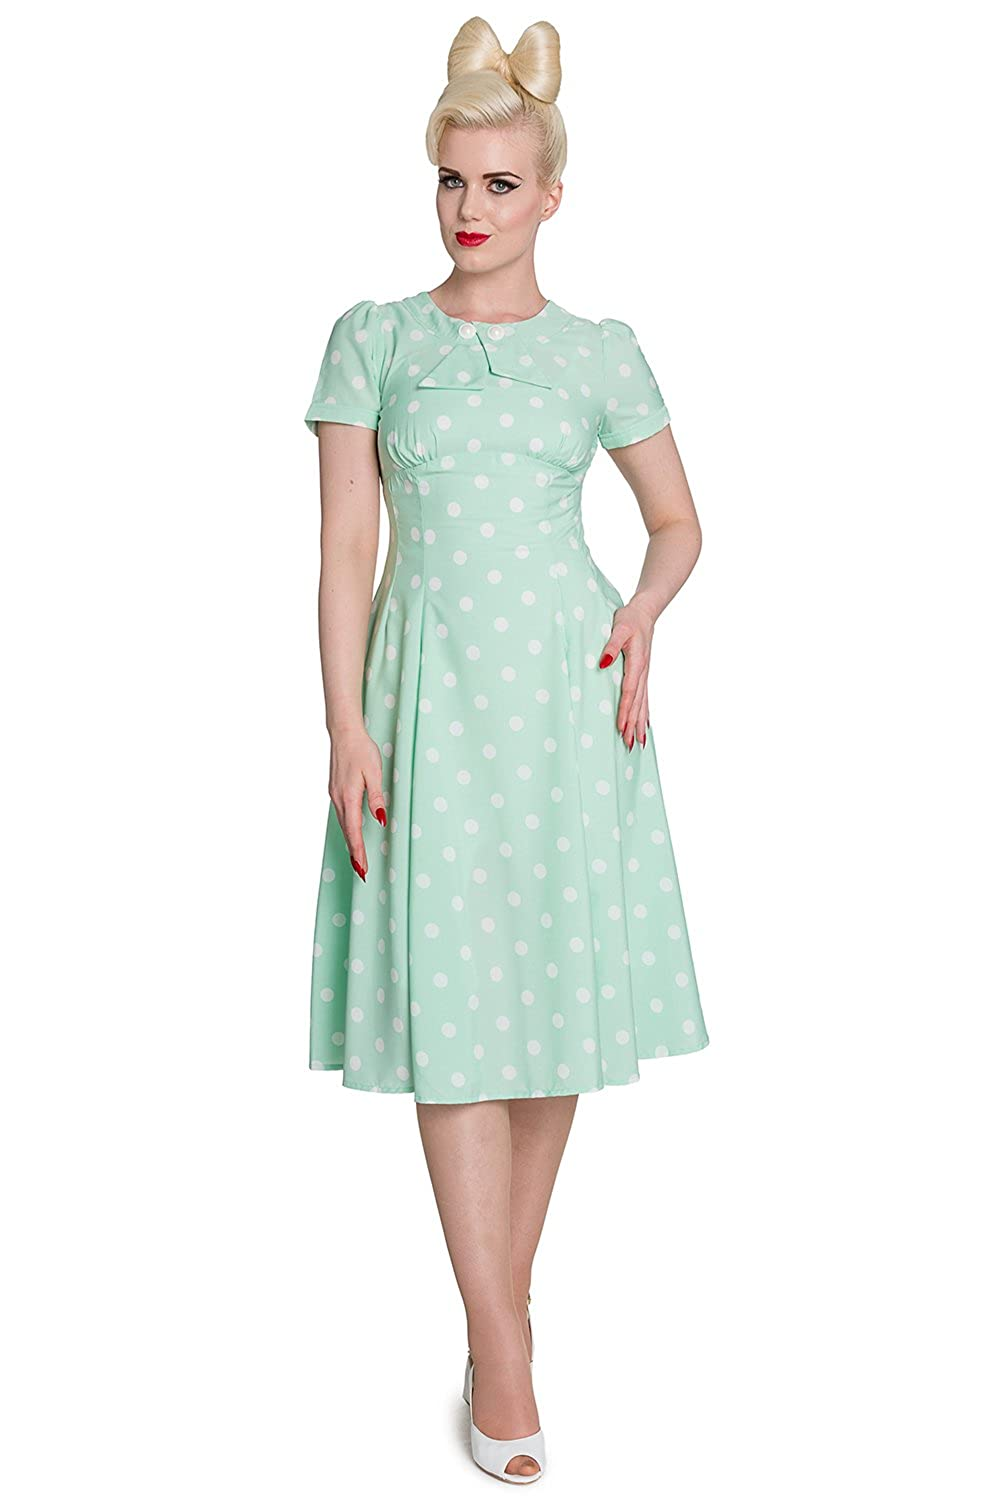 131c278b681 ... Length of the dress  Below Knee Unlined. Semi-sheer. Back zipper  closure. Decorative front buttons. Color  Mint with white polka dots